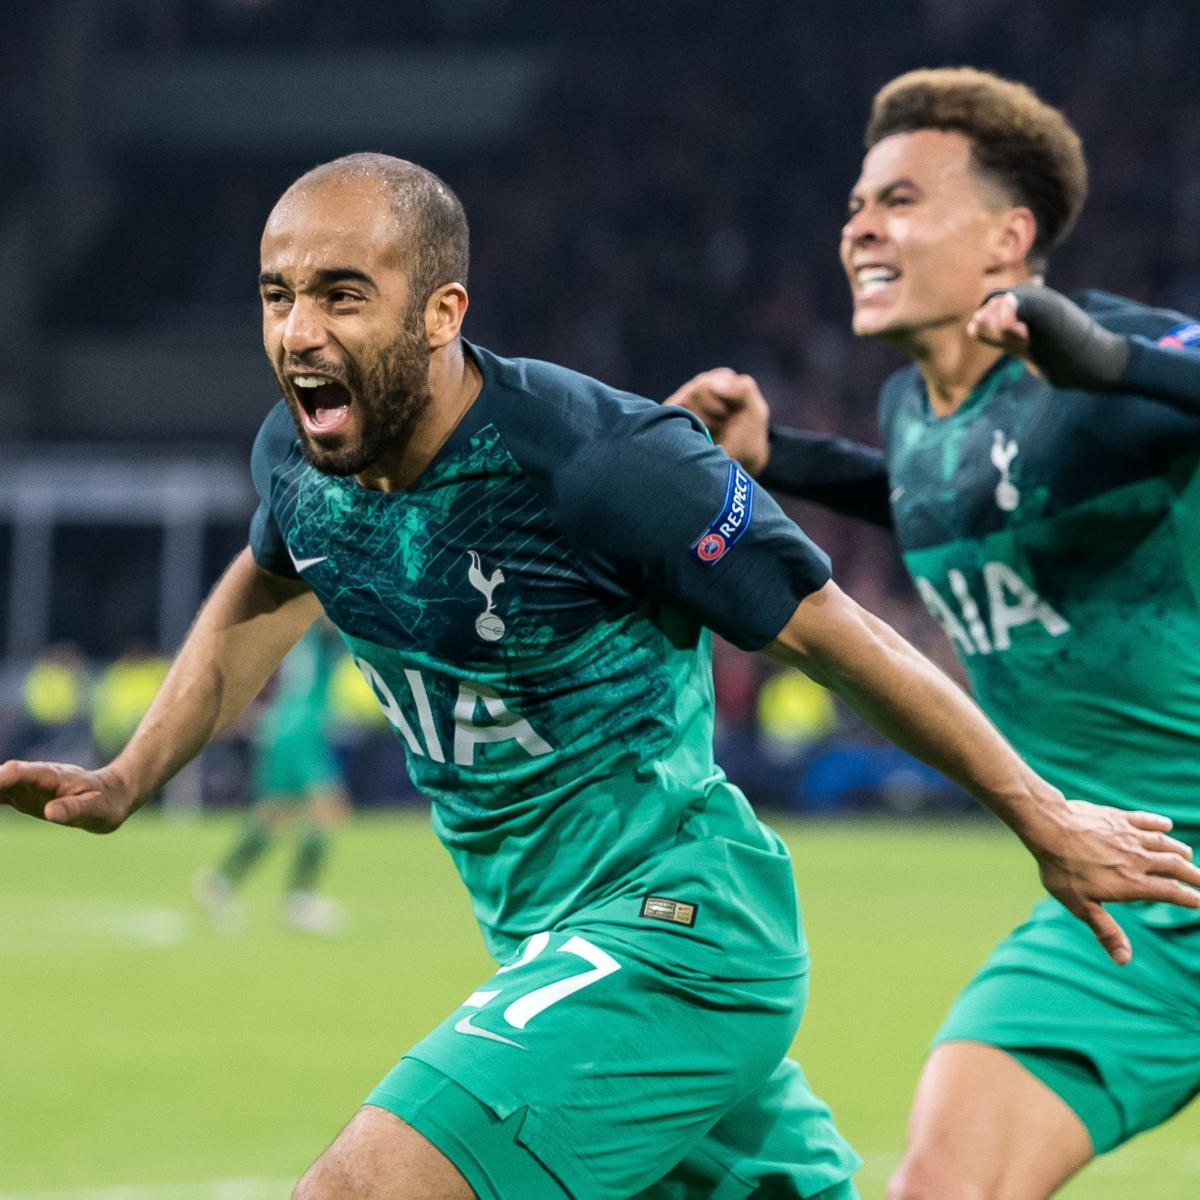 Lucas Moura Spurs Goals: Video: Watch Lucas Moura's Shocking 96th-Minute Goal Send